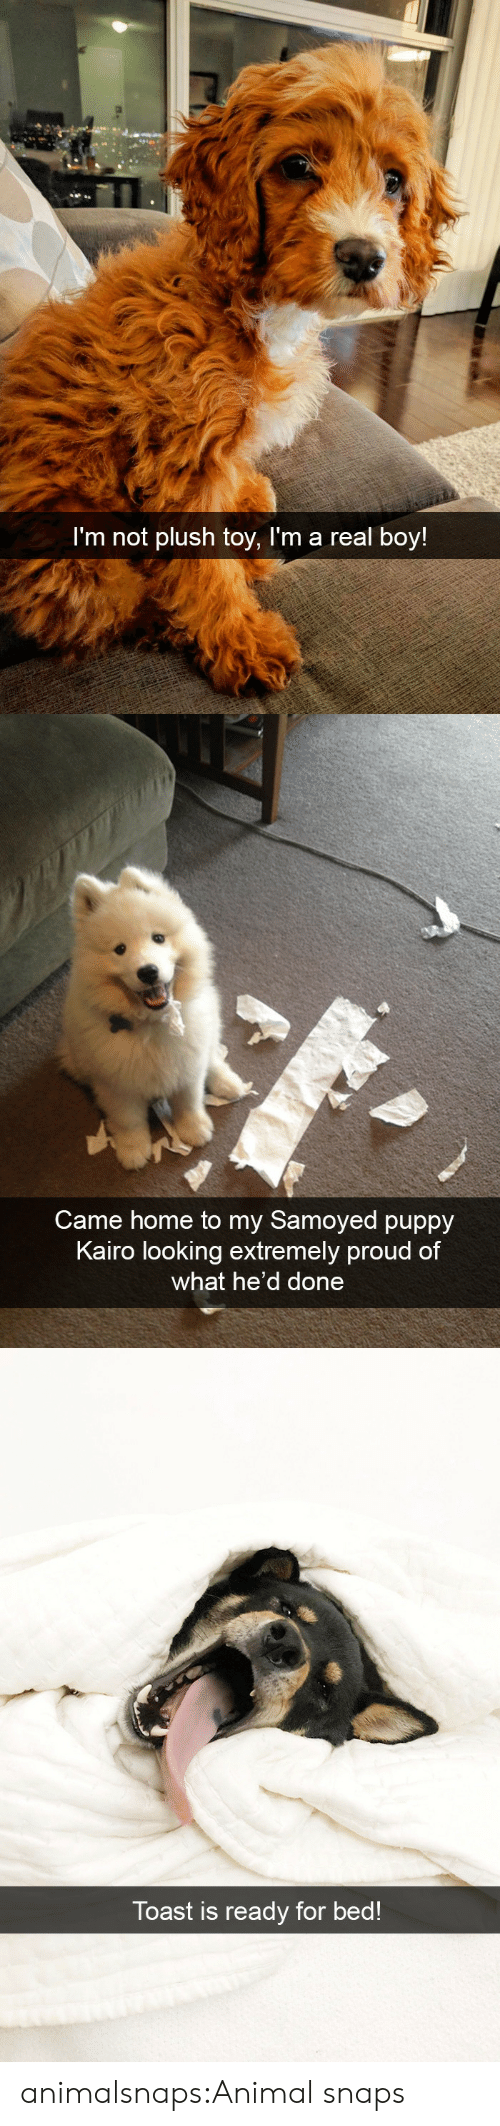 plush: I'm not plush toy, l'm a real boy!   Came home to my Samoyed puppy  Kairo looking extremely proud of  what he'd done   Toast is ready for bed! animalsnaps:Animal snaps